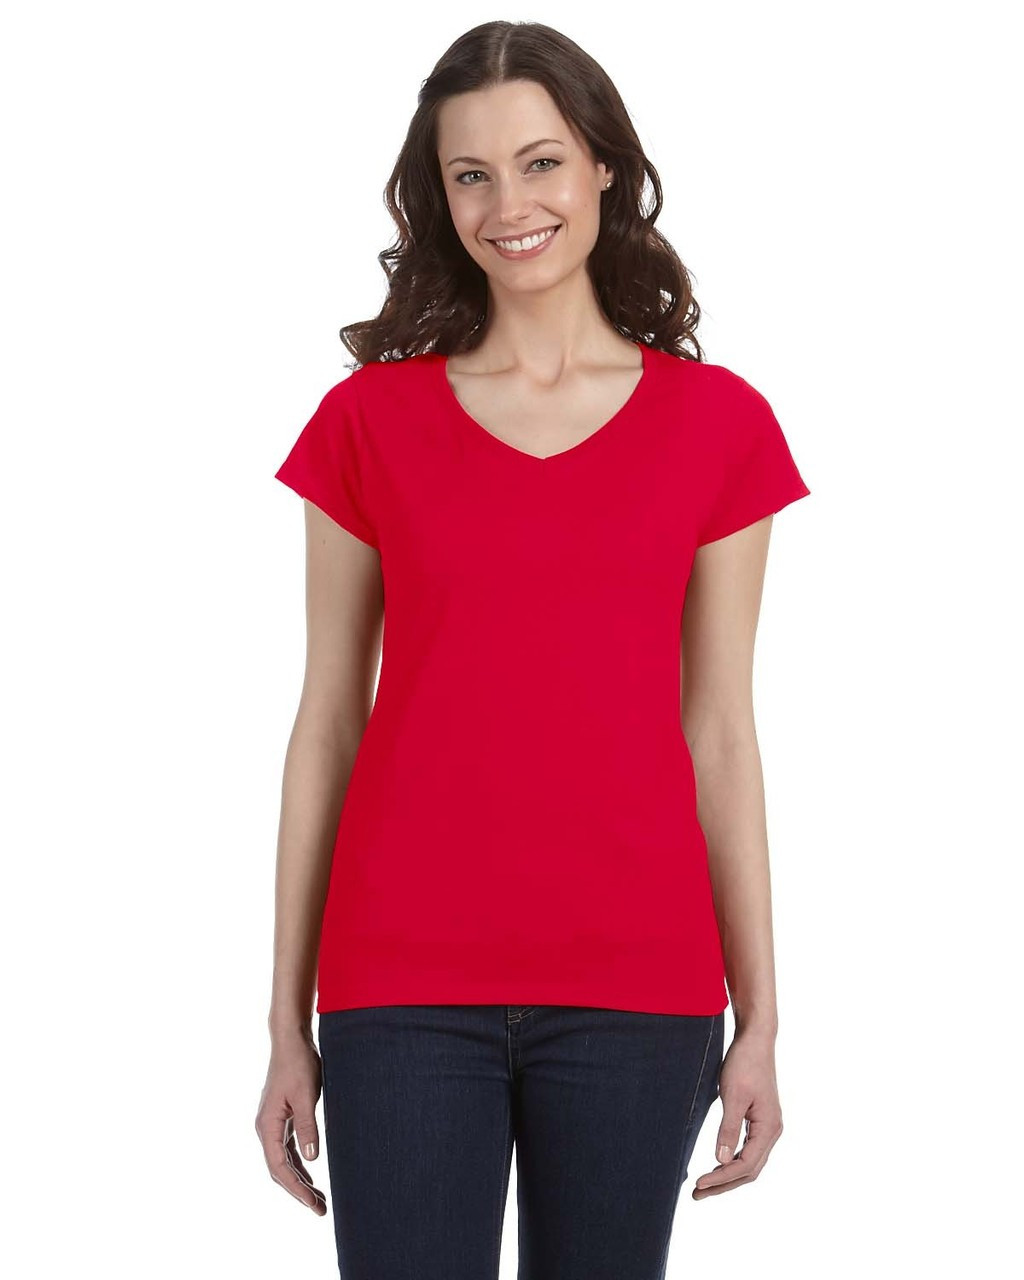 Cherry Red - G64VL SoftStyle Ladies' Junior Fit V-Neck T-Shirt | Blankclothing.ca